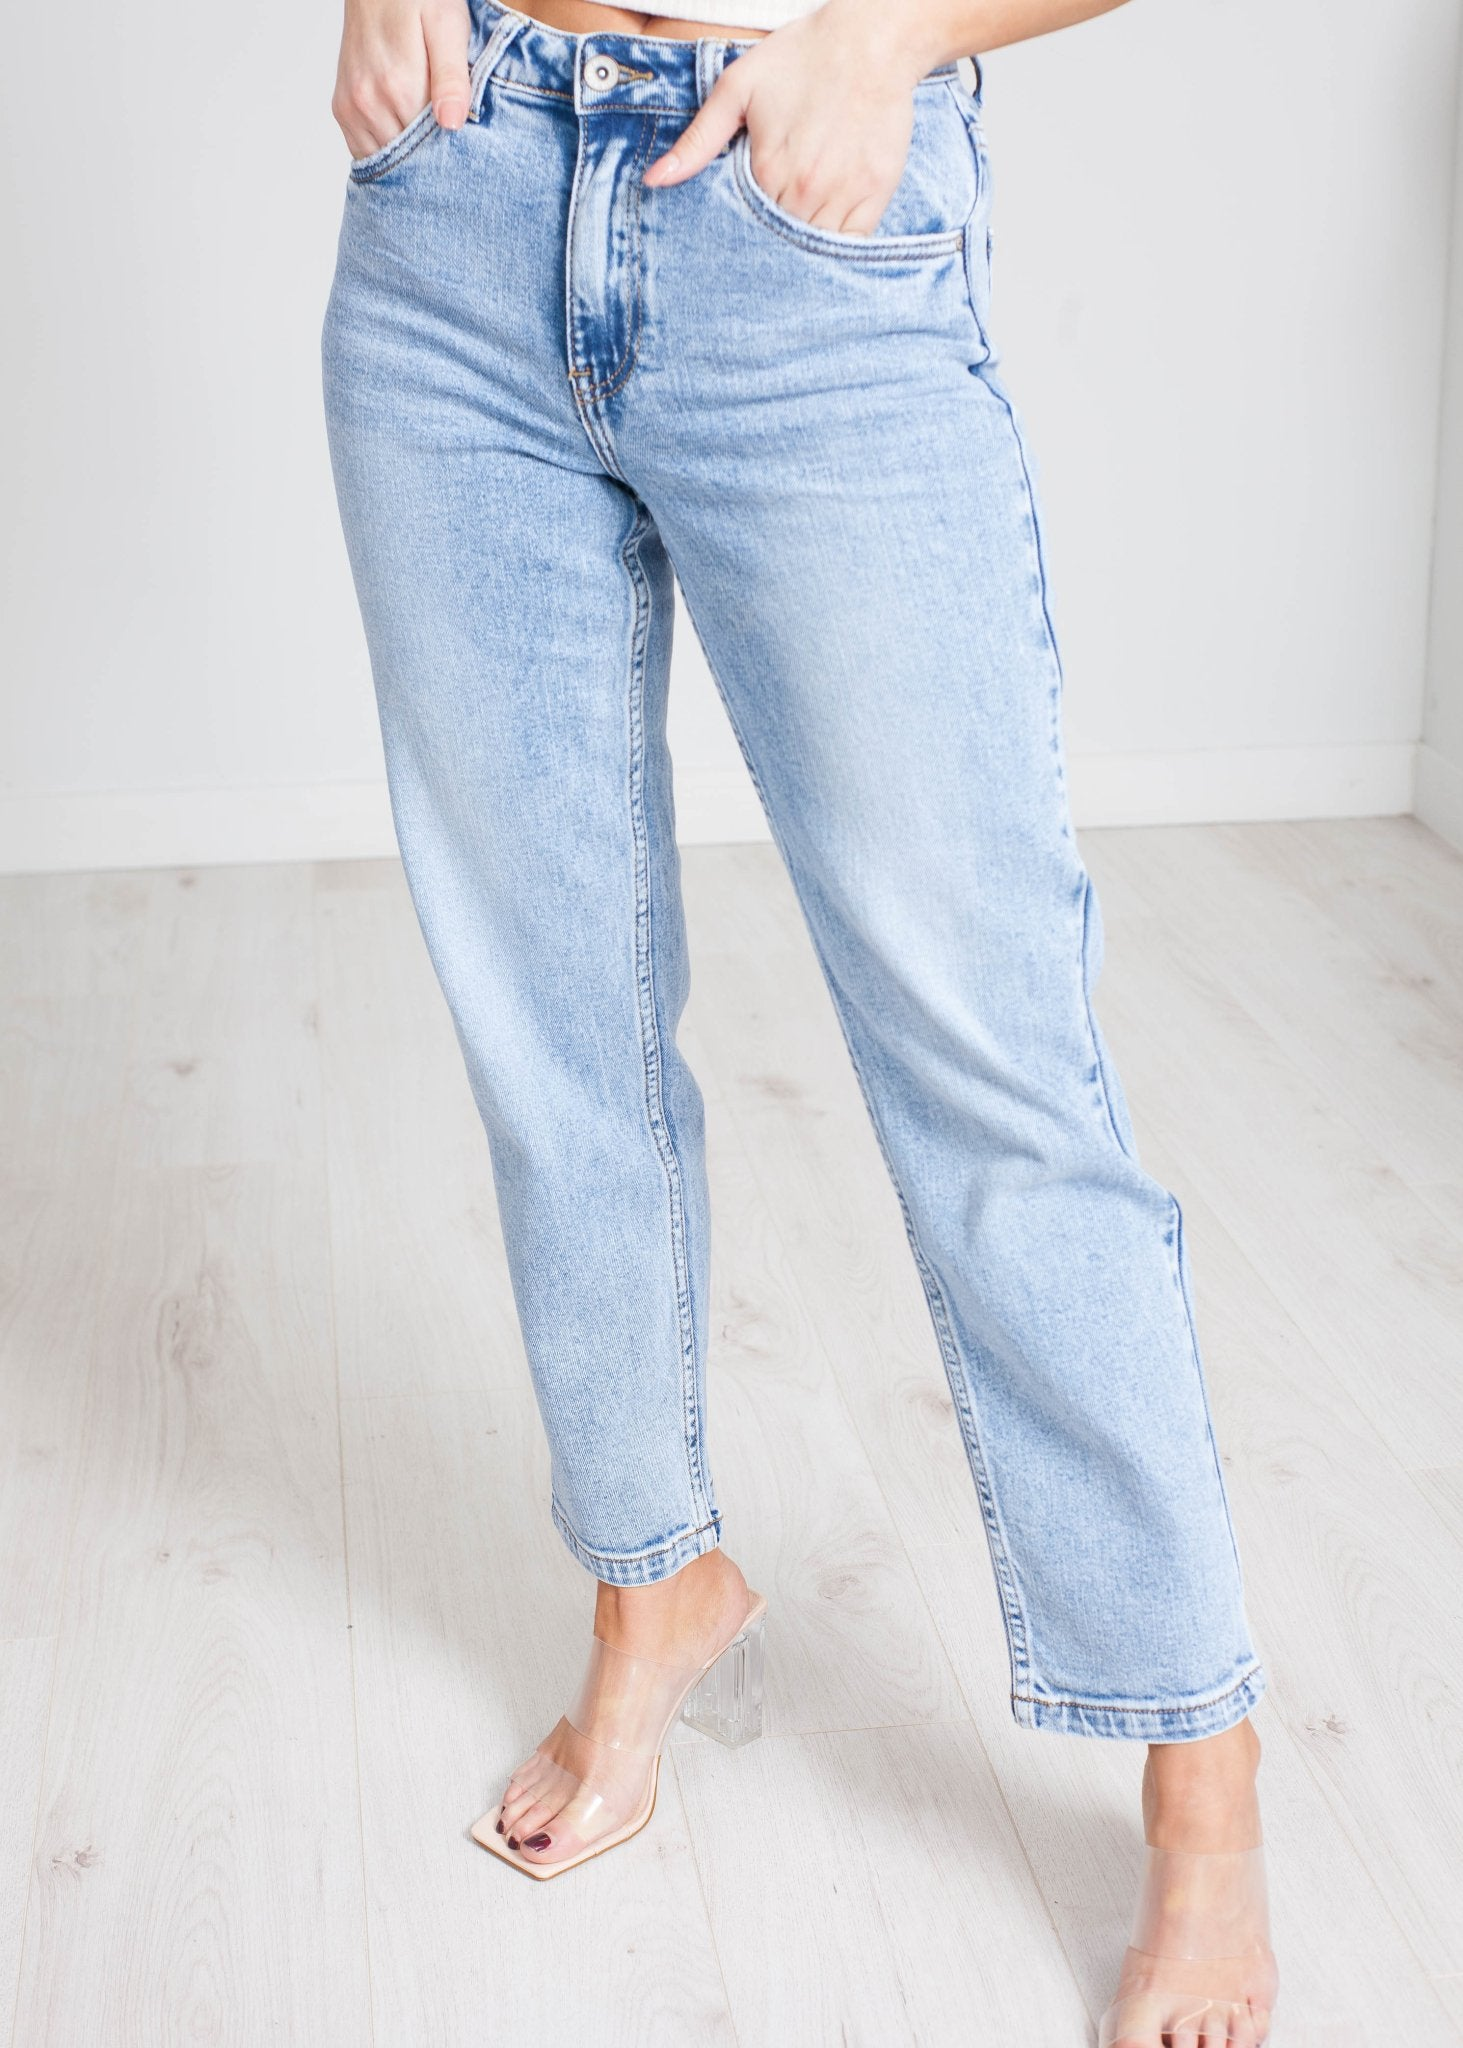 Aveen Straight Leg Jean In Light Wash - The Walk in Wardrobe